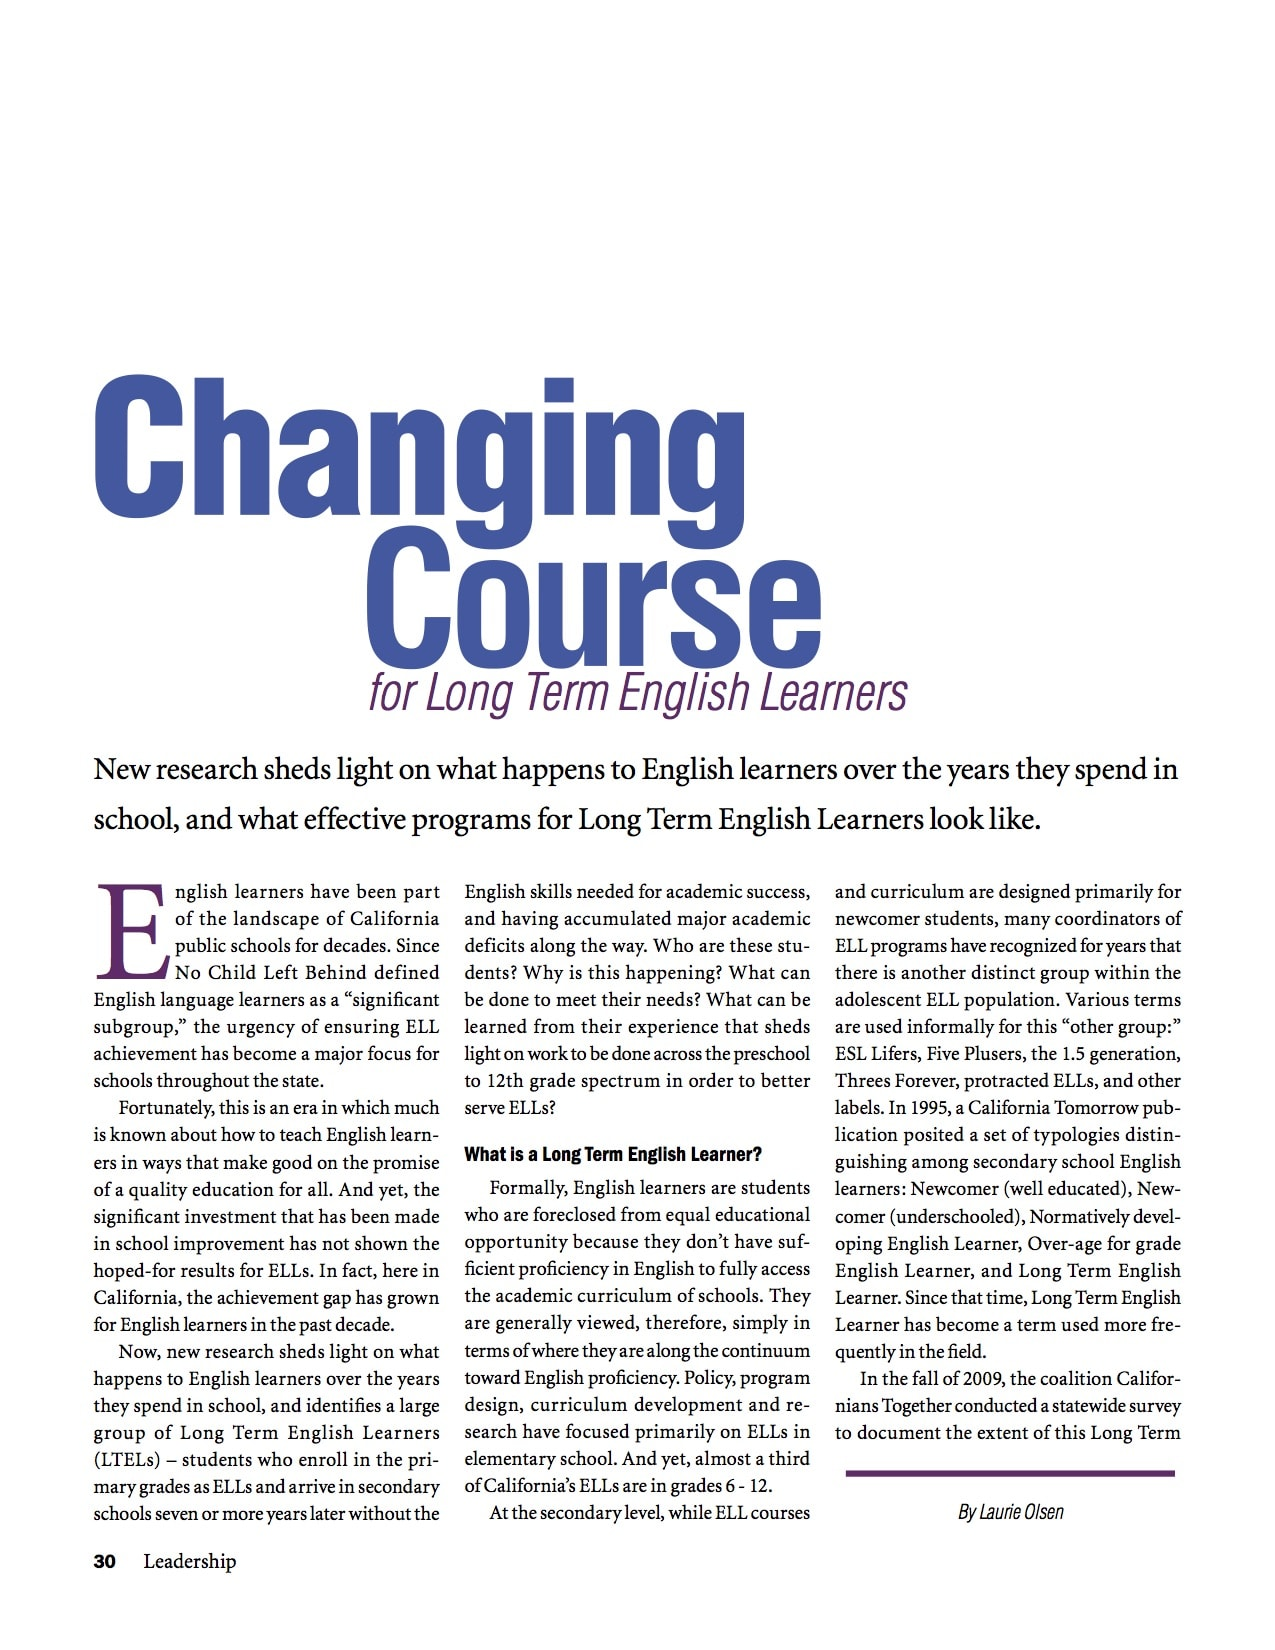 Changing Course for Long Term English Learners